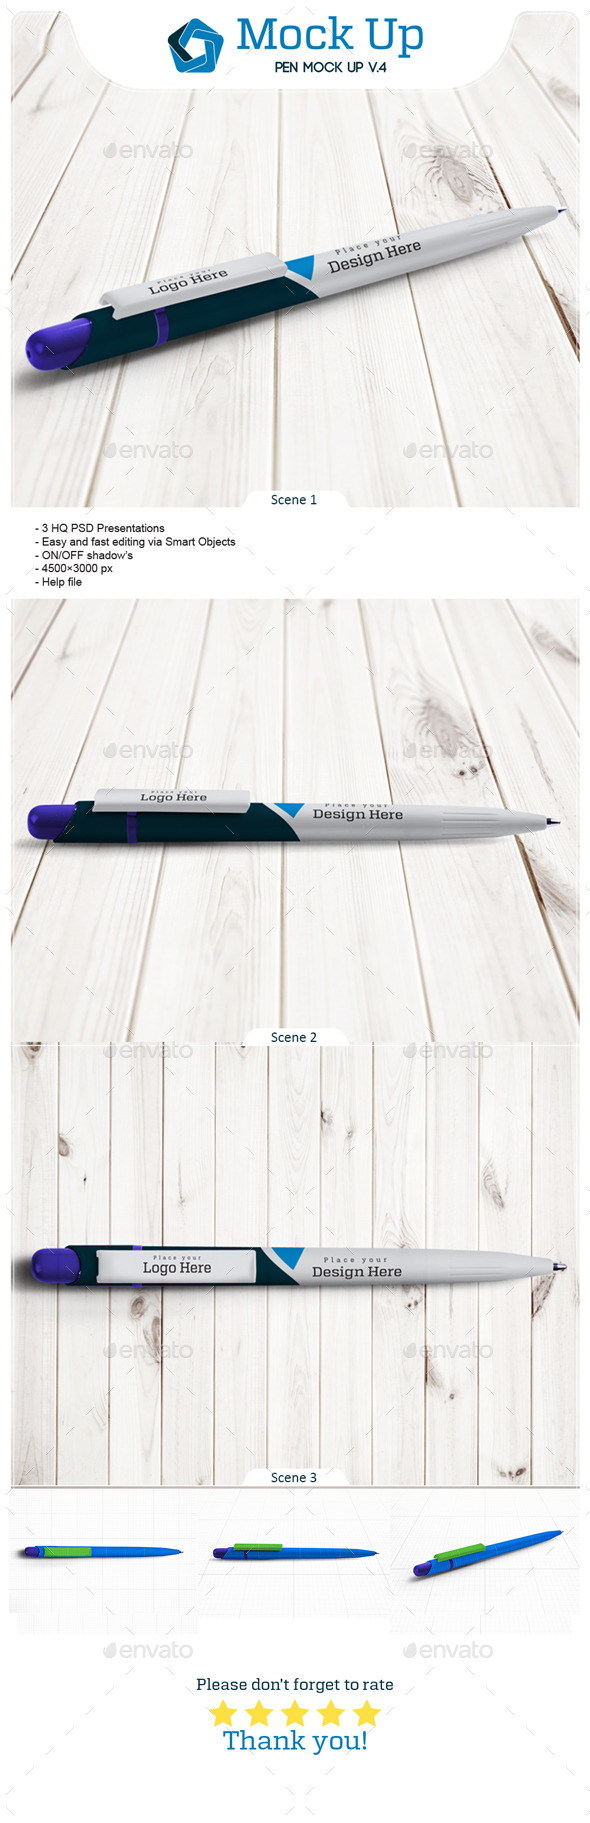 Pen Mock Up V.4